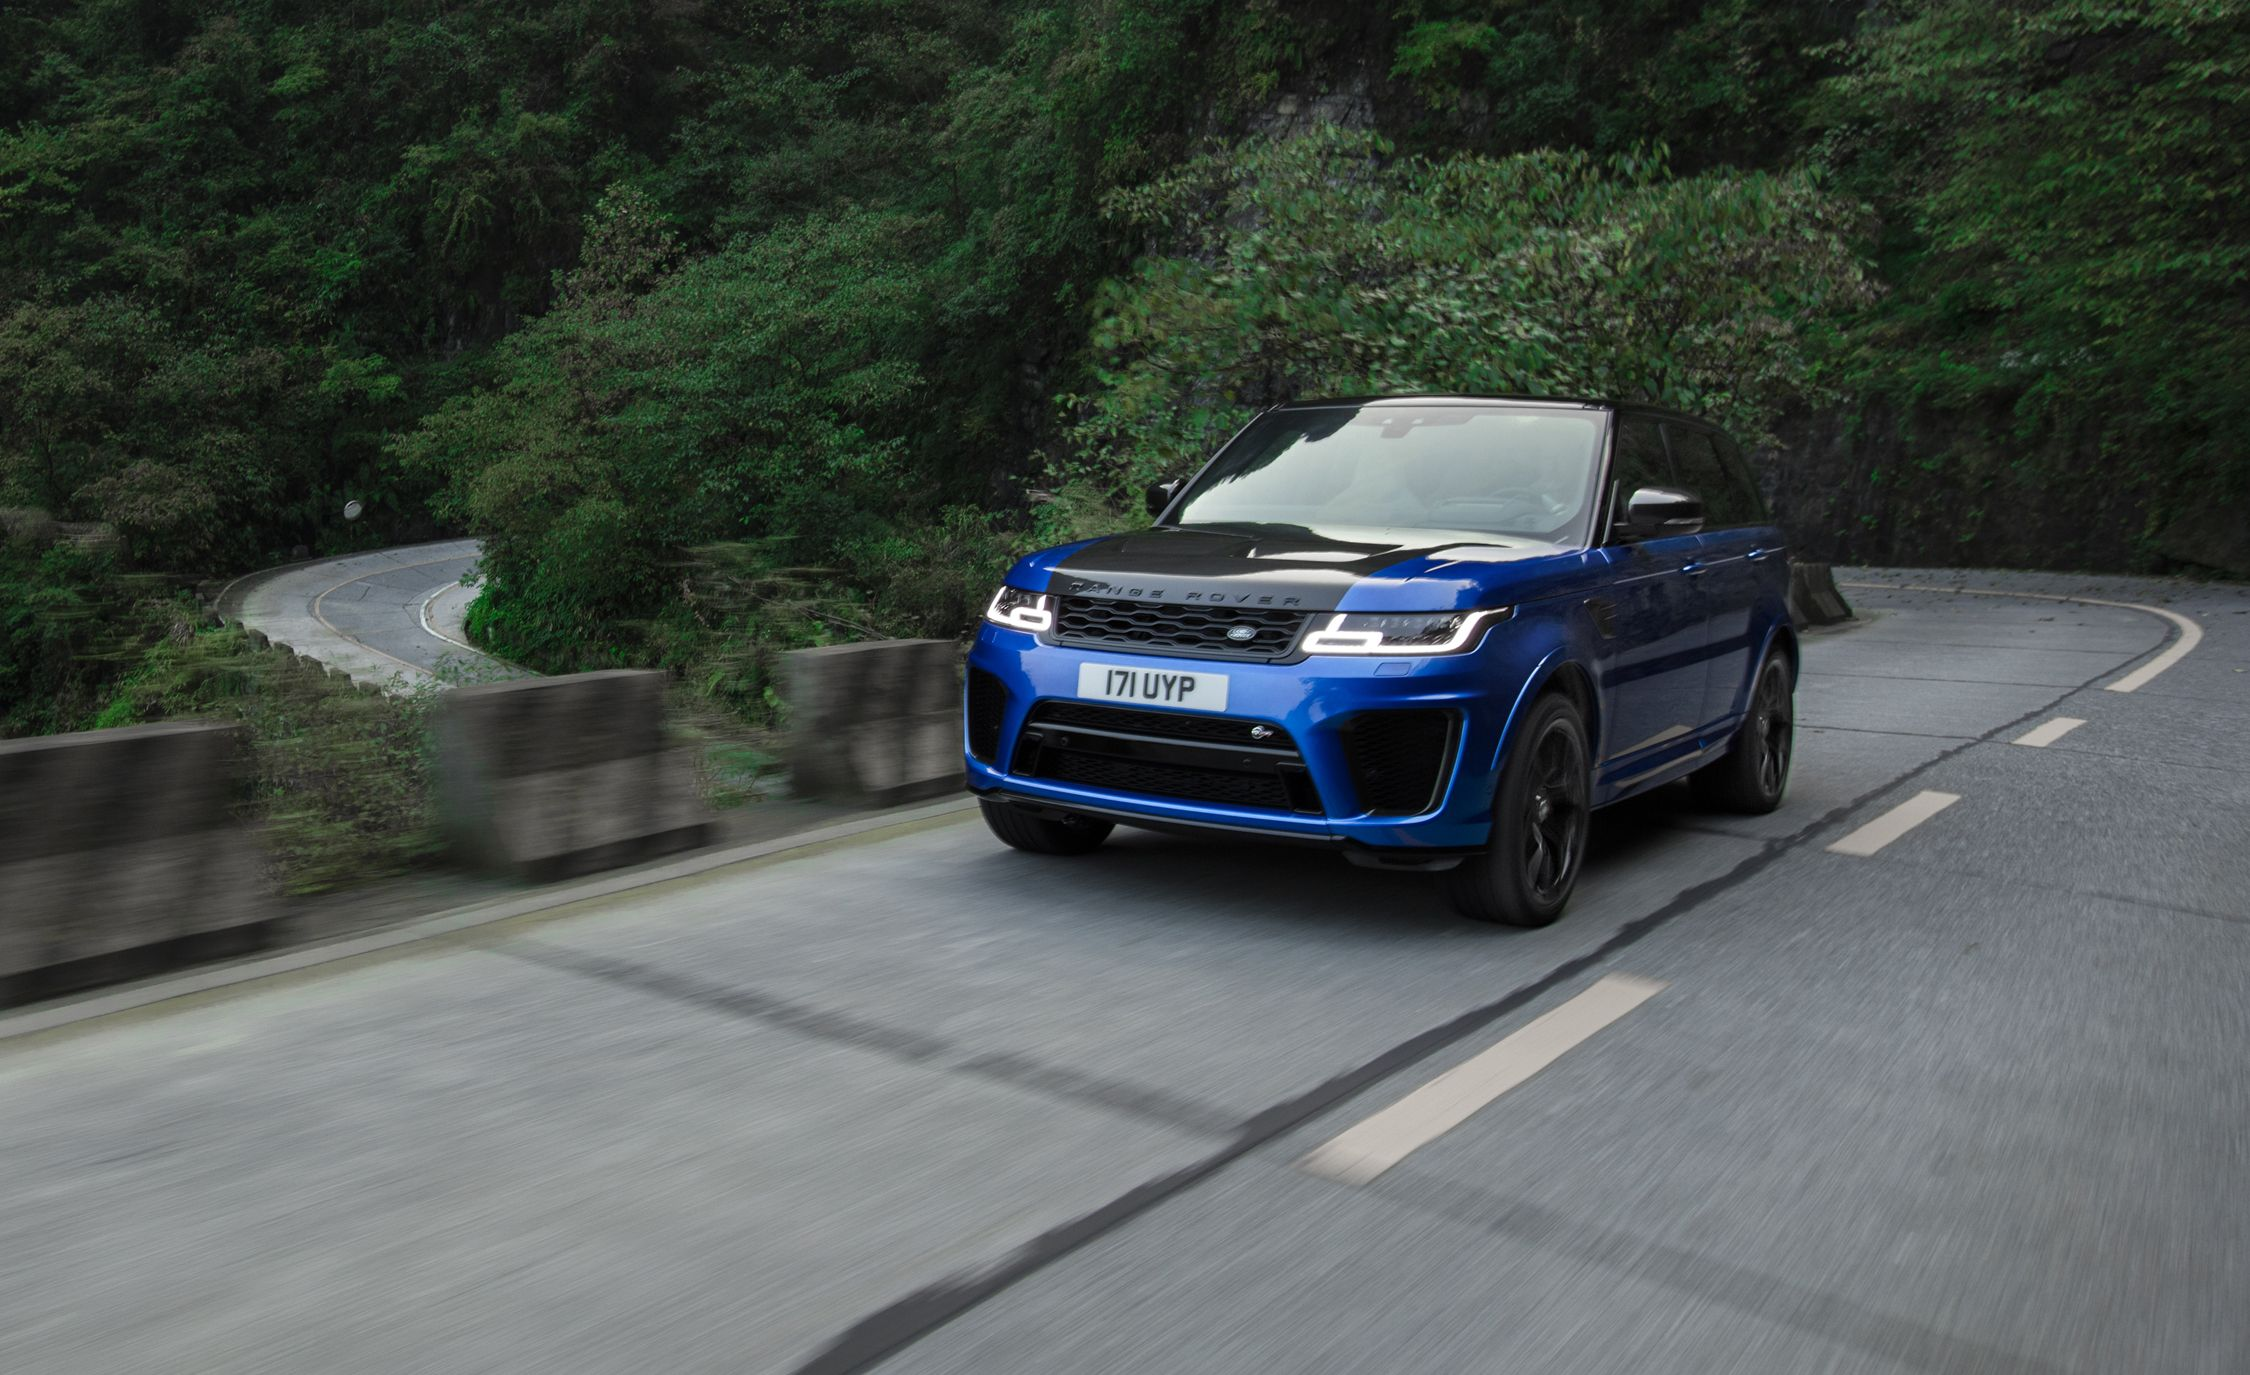 2018 Range Rover Sport Svr First Drive It Largely Defies Physics Review Car And Driver